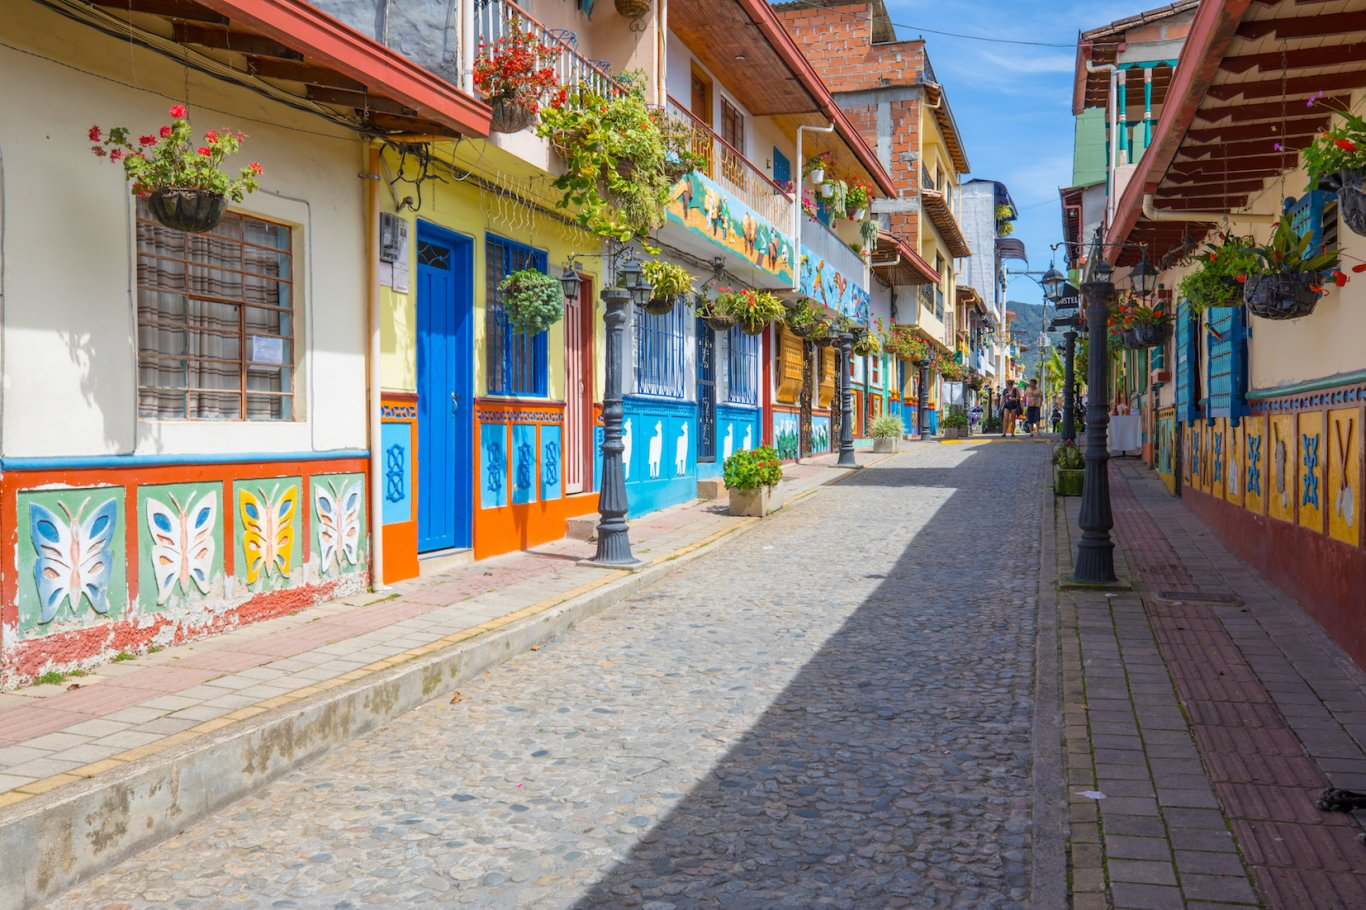 View of colourful street in Colombia with cobbled floor